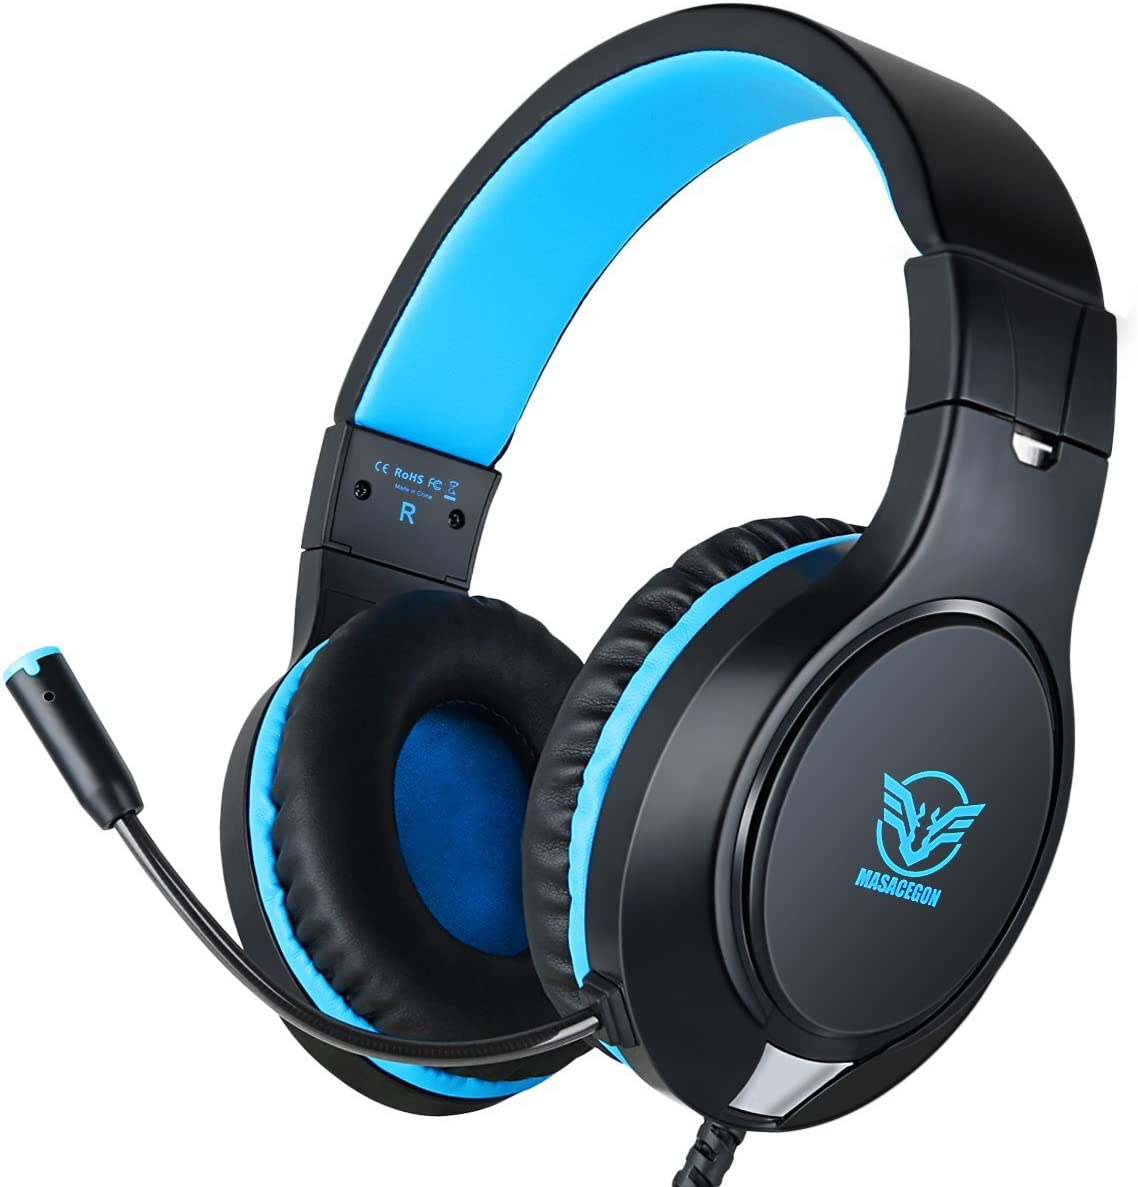 Gaming Headset for Xbox One, PS4,Nintendo Switch Bass Surround and Noise Cancelling with Flexible Mic, 3.5mm Wired Adjustable Over-Ear Headphones for Laptop PC iPad Smartphones (Blue-Black)